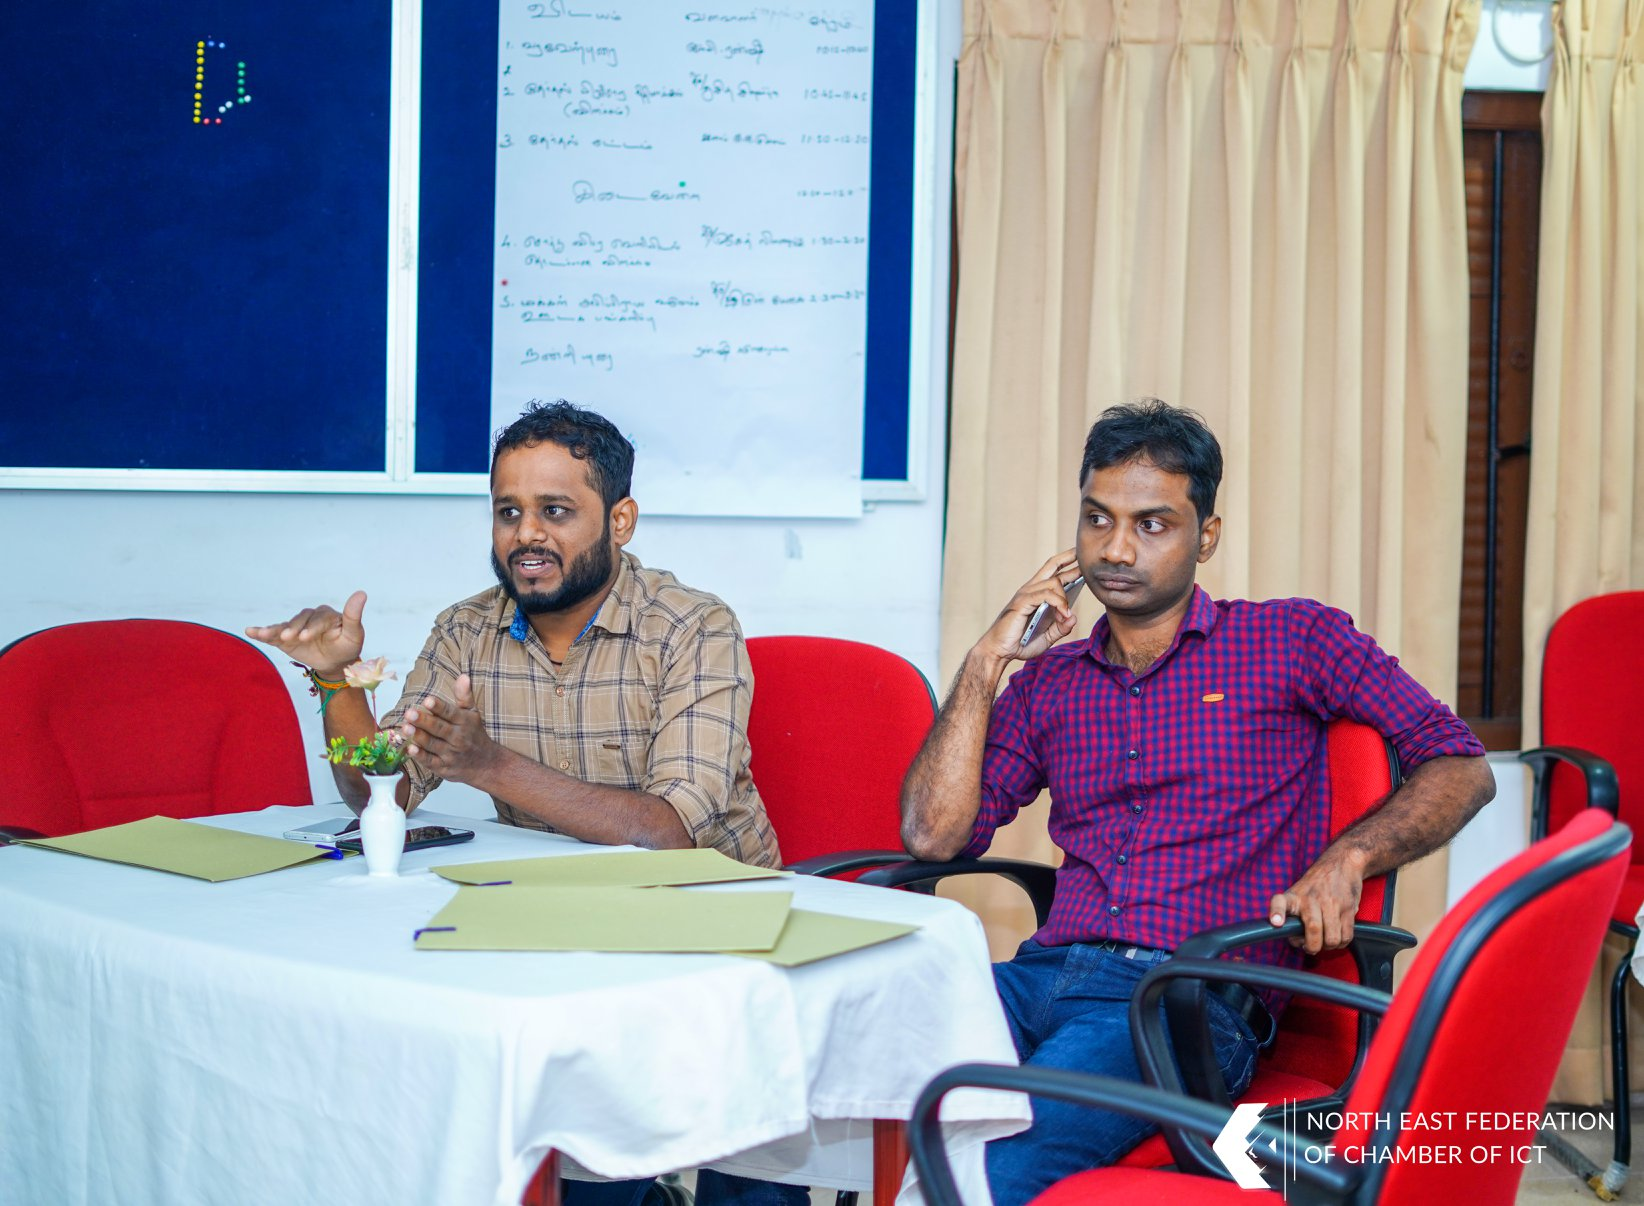 The Fifth General Meeting of North East Federation of Chamber of ICT 4